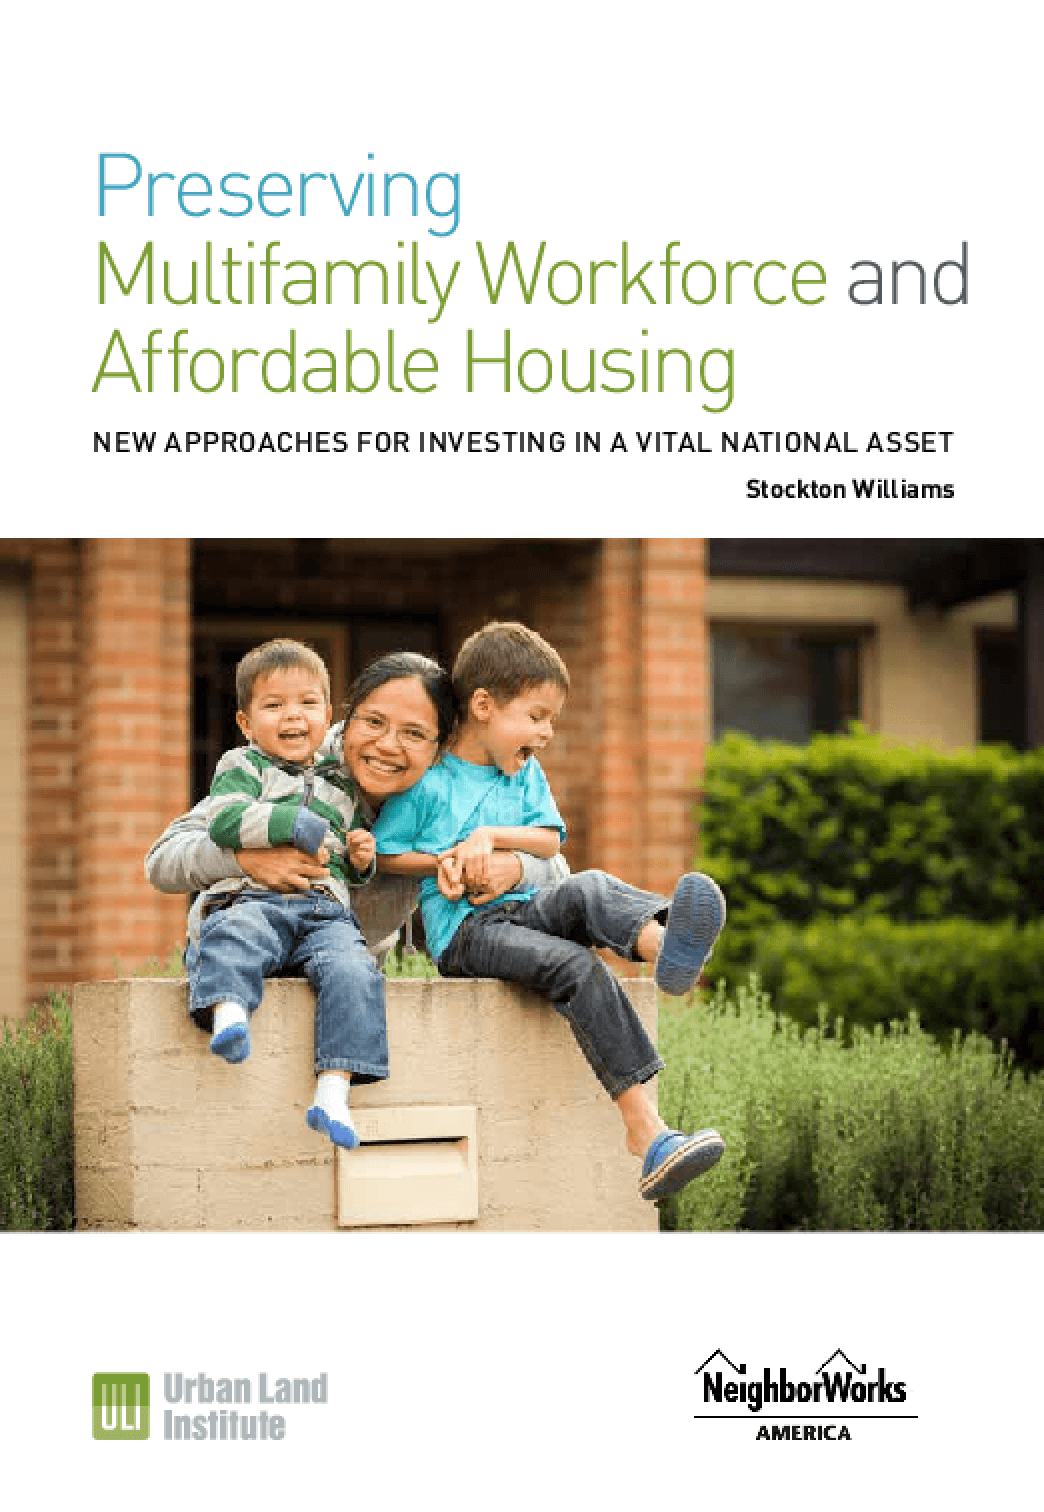 Preserving Multifamily Workforce and Affordable Housing